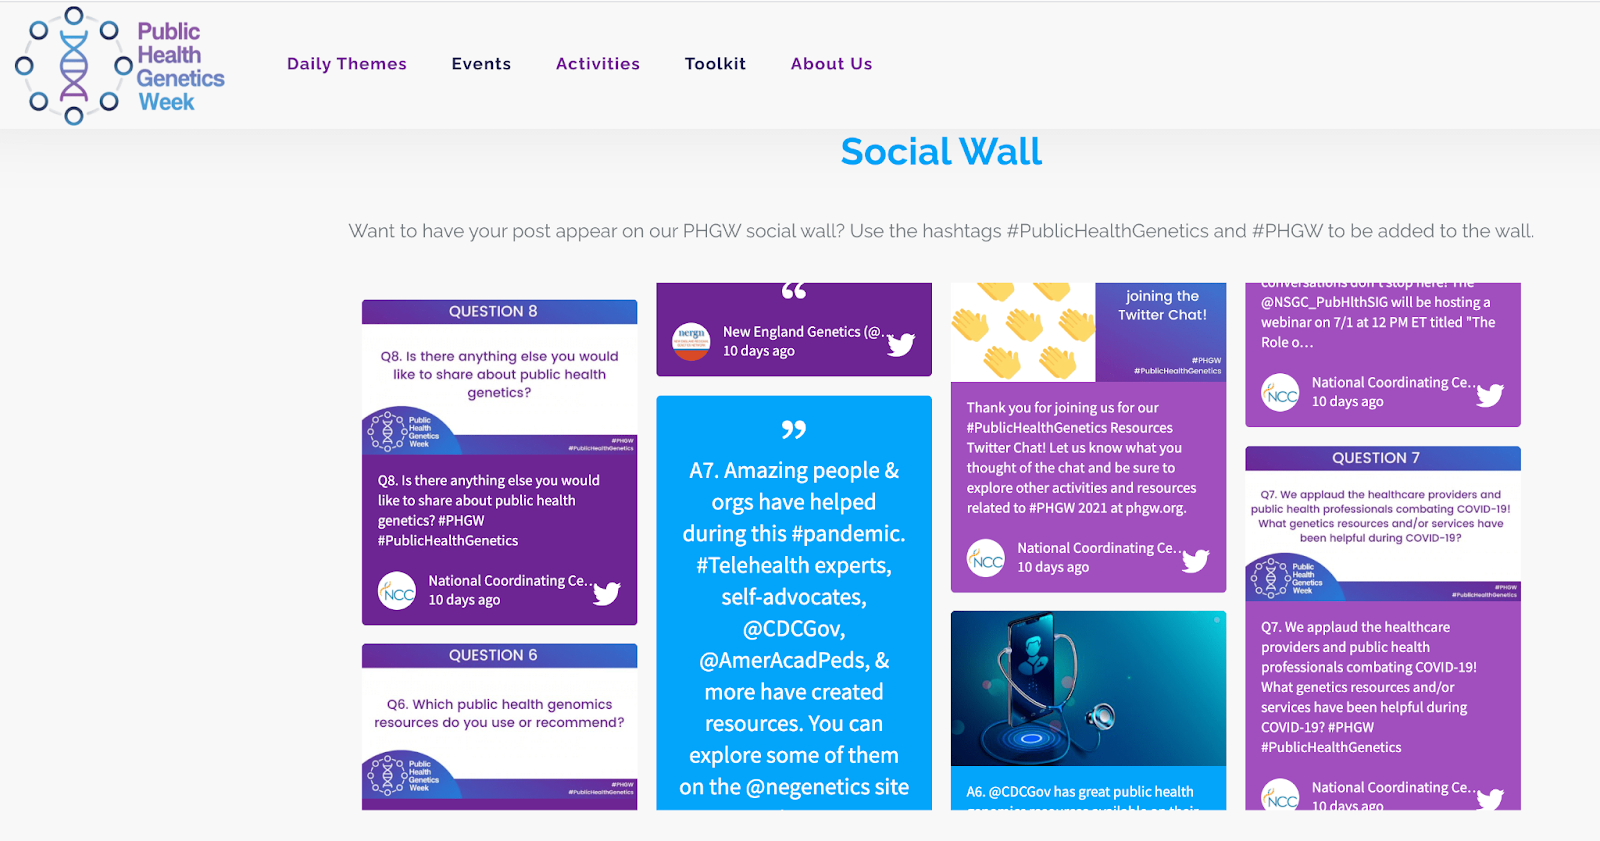 Screenshot of PHGW's website. The image shows a social wall with multiple tweets.